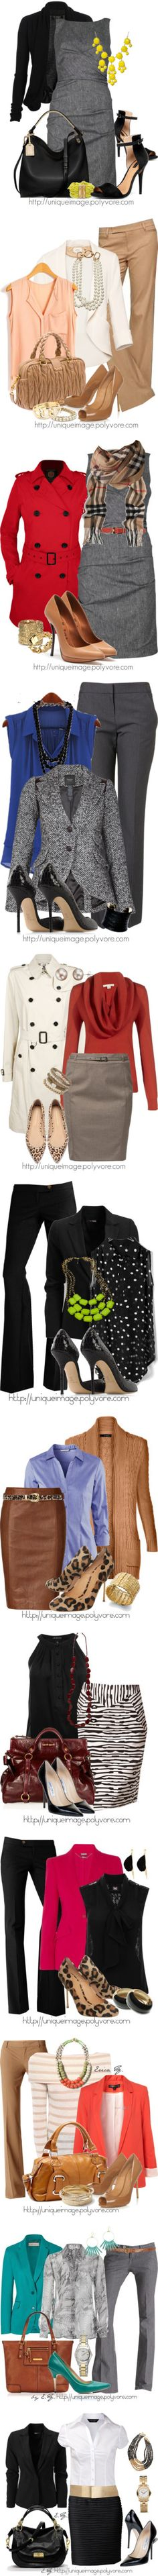 """Work Attire"" by uniqueimage on Polyvore"